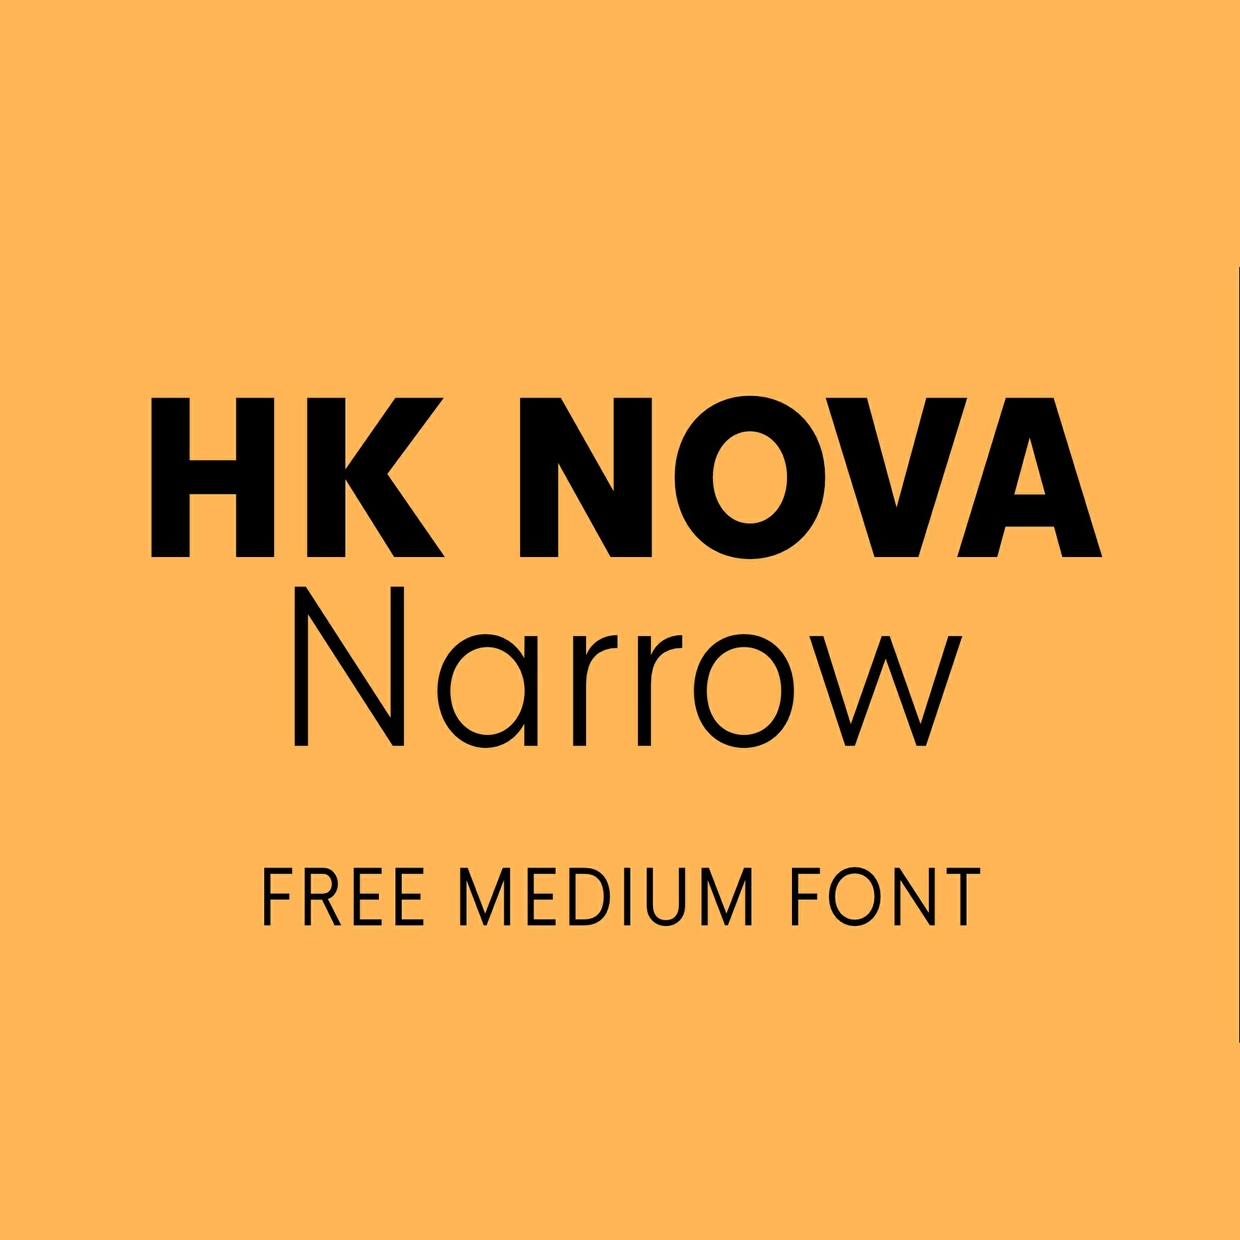 HK Nova Medium Narrow